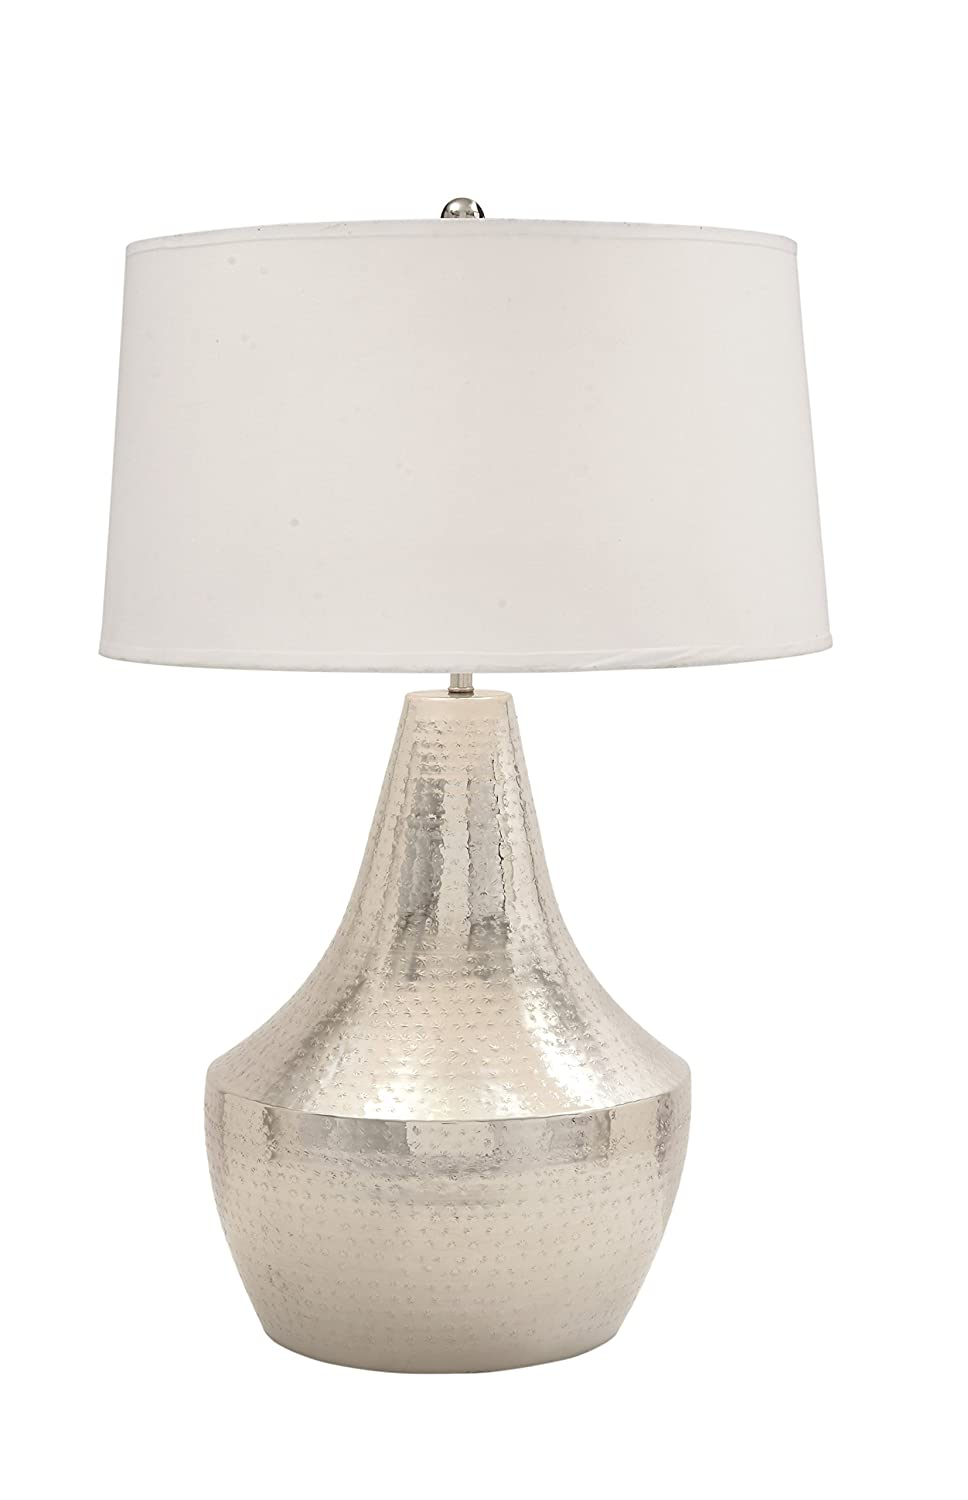 Amazon.com: Deco 79 23572 Stunning Metal Hammered Table Lamp ...